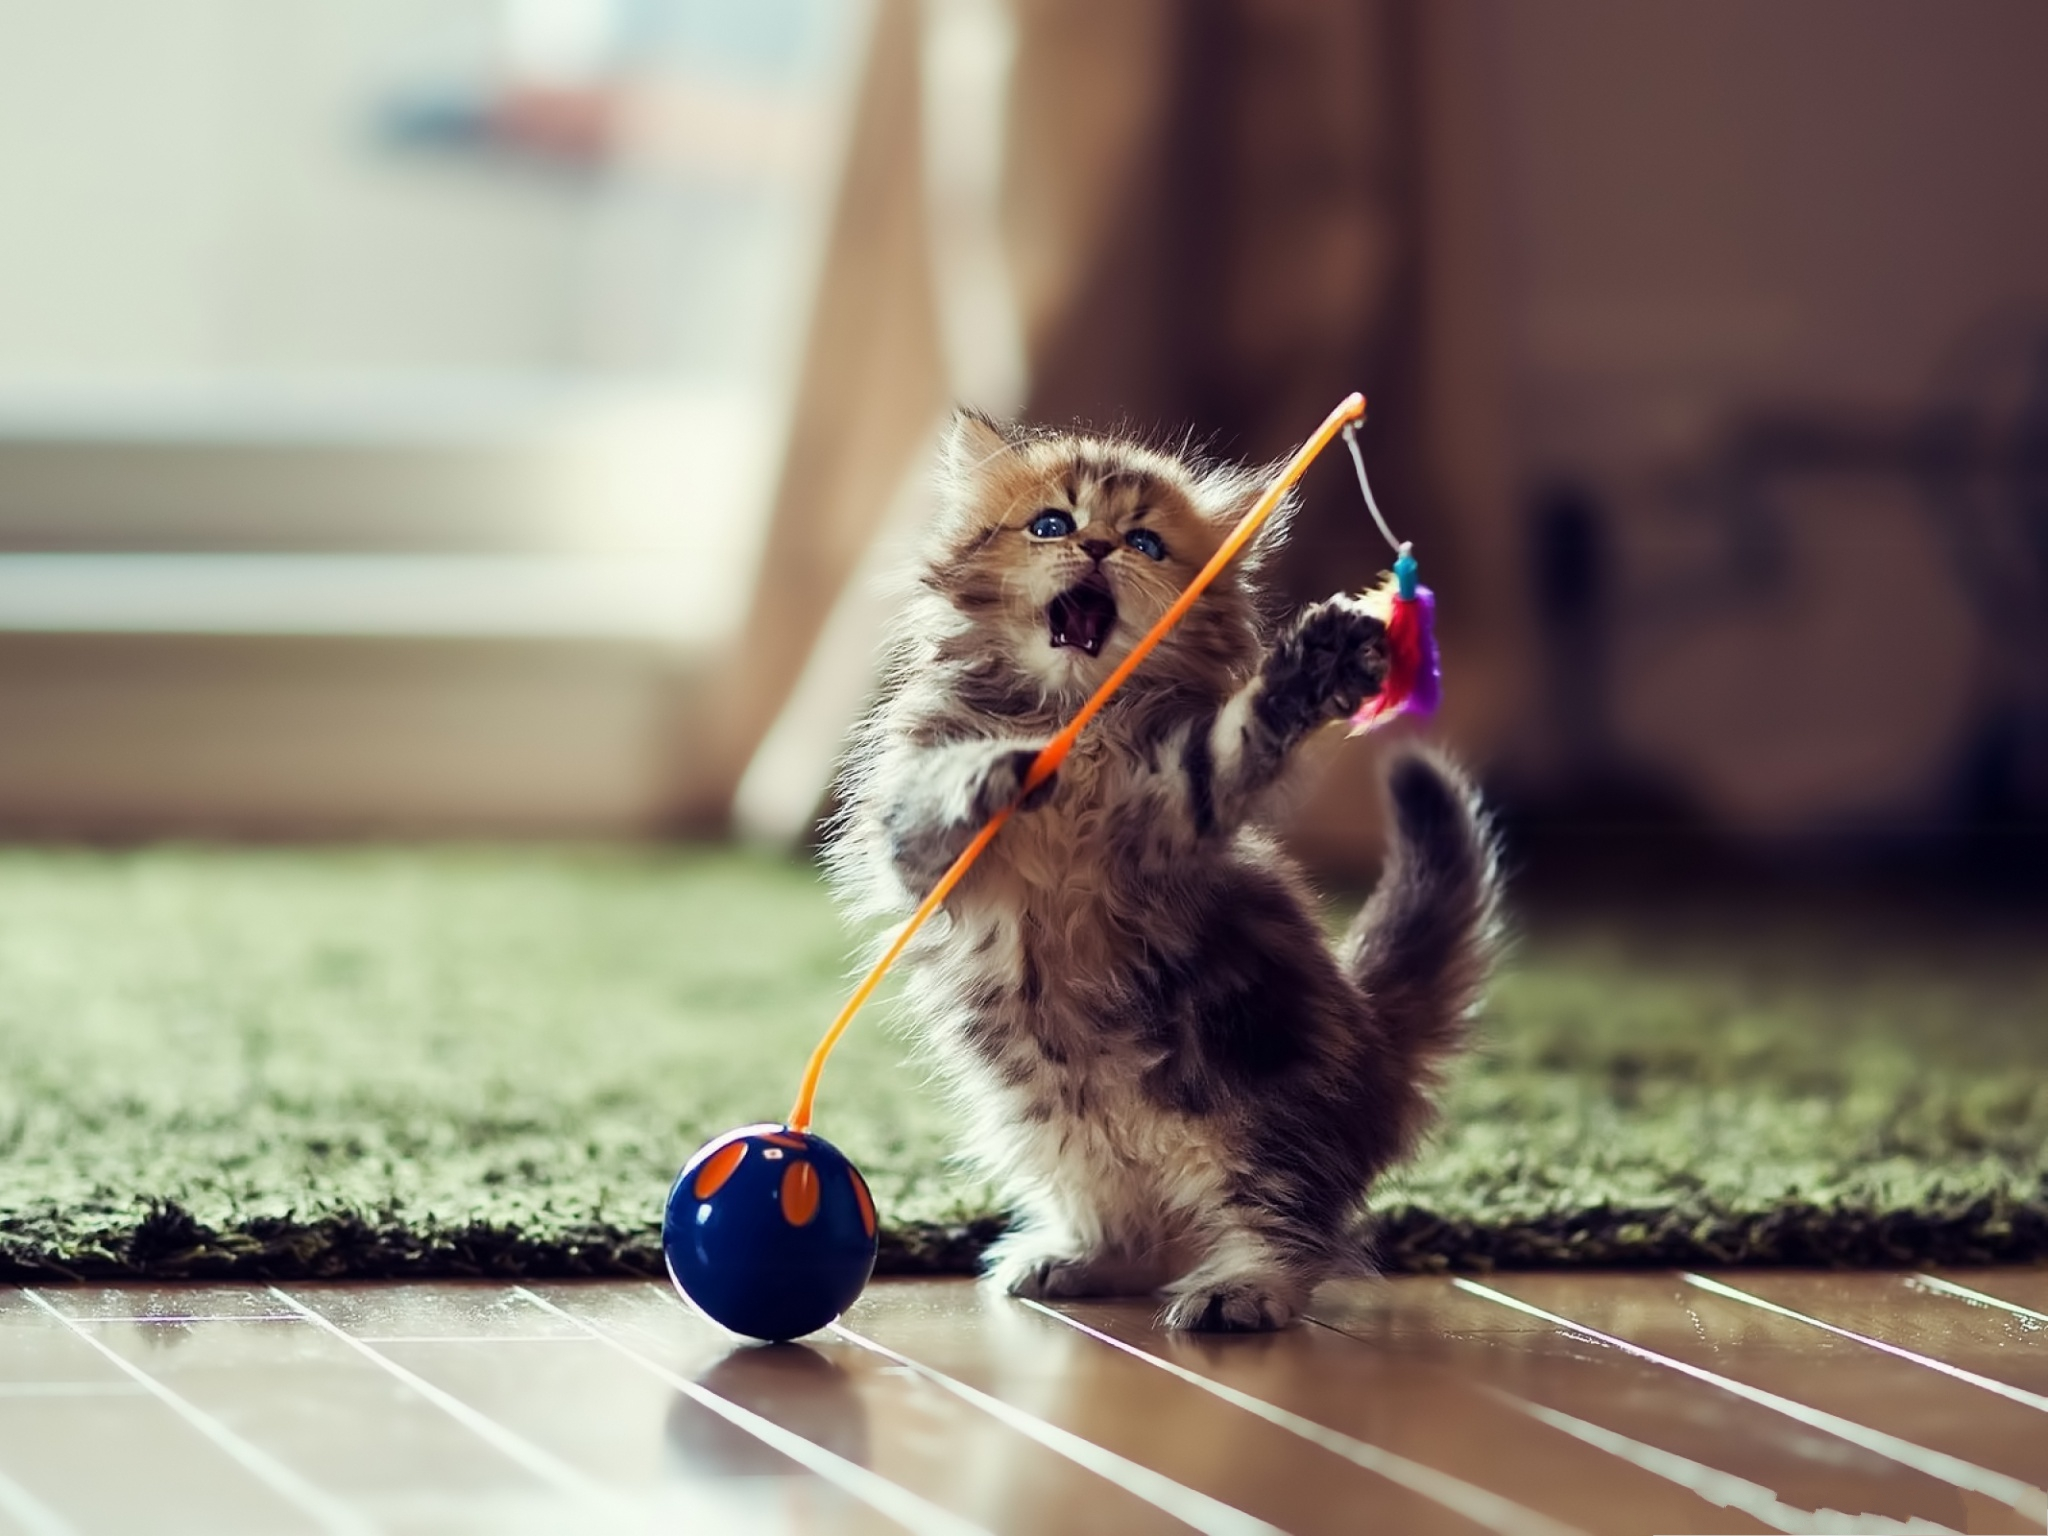 click to free download the wallpaper--Funny Cat Photos, Cute Kitten Standing Up, What a Dancer! 2048X1536 free wallpaper download